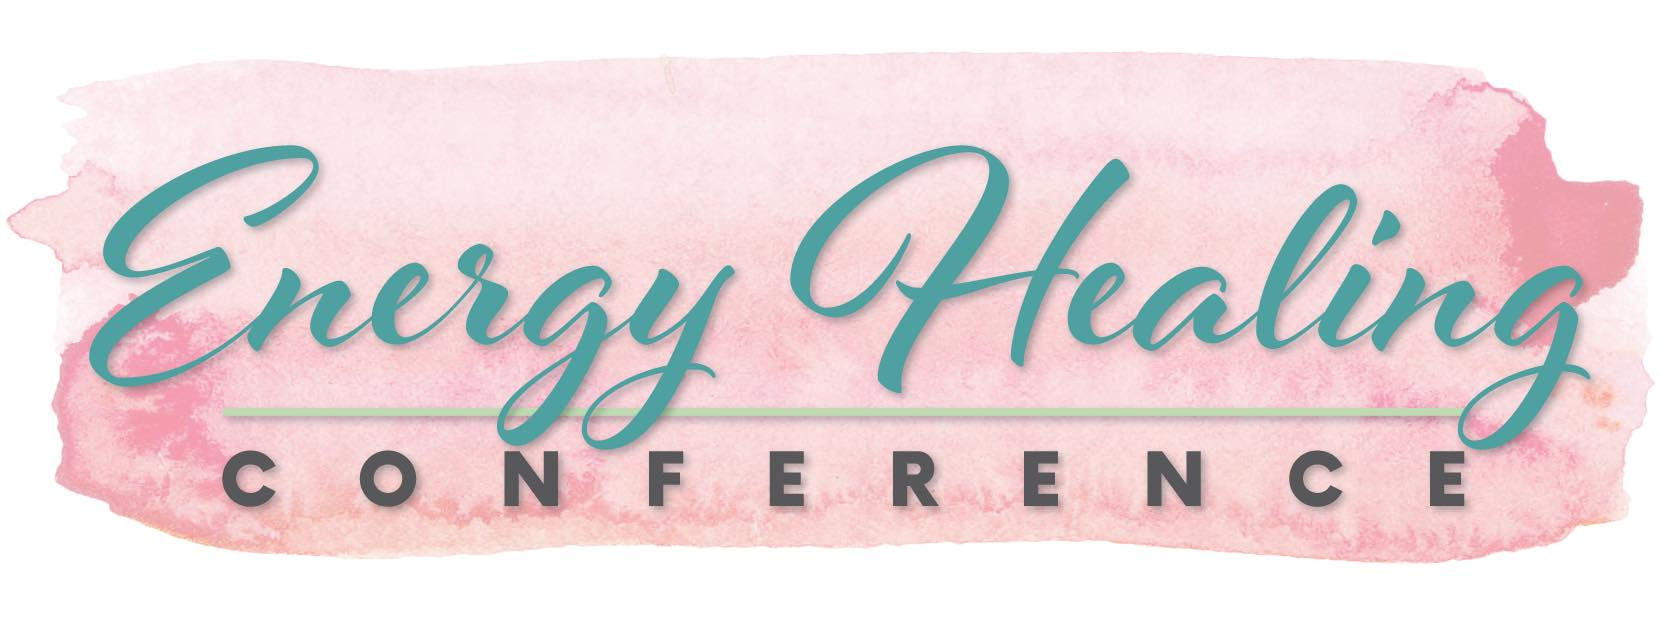 2018 Energy Healing Conference